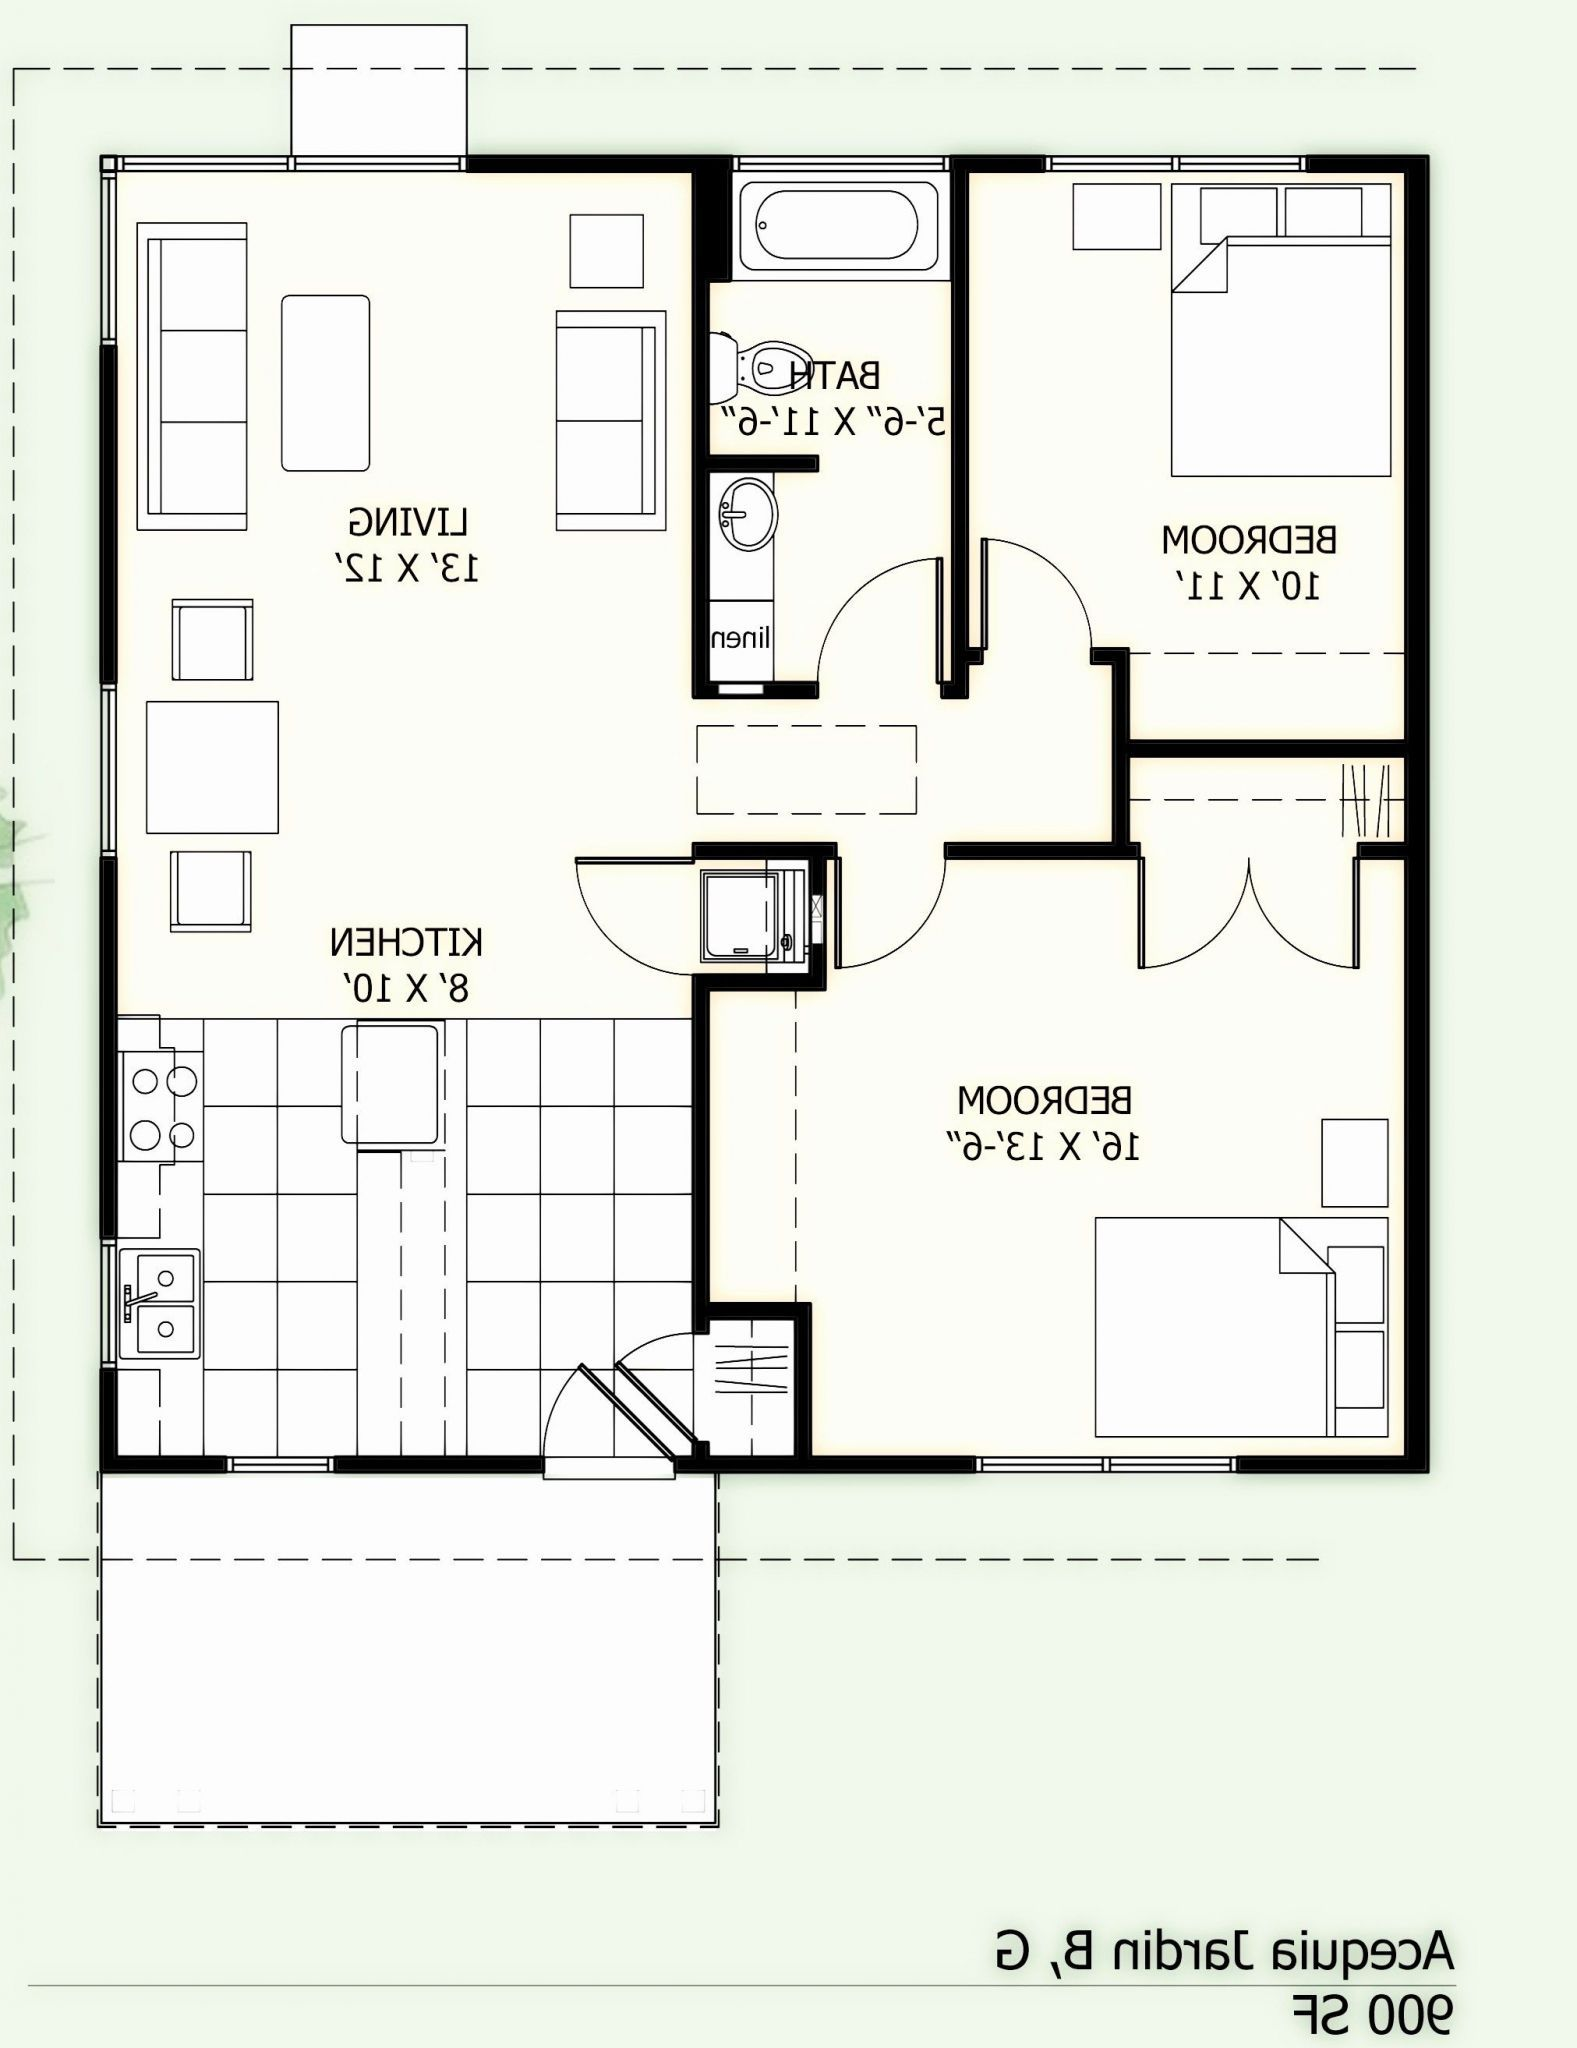 2nd Floor Deck Plans In 2020 1200sq Ft House Plans Small House Plans House Plans